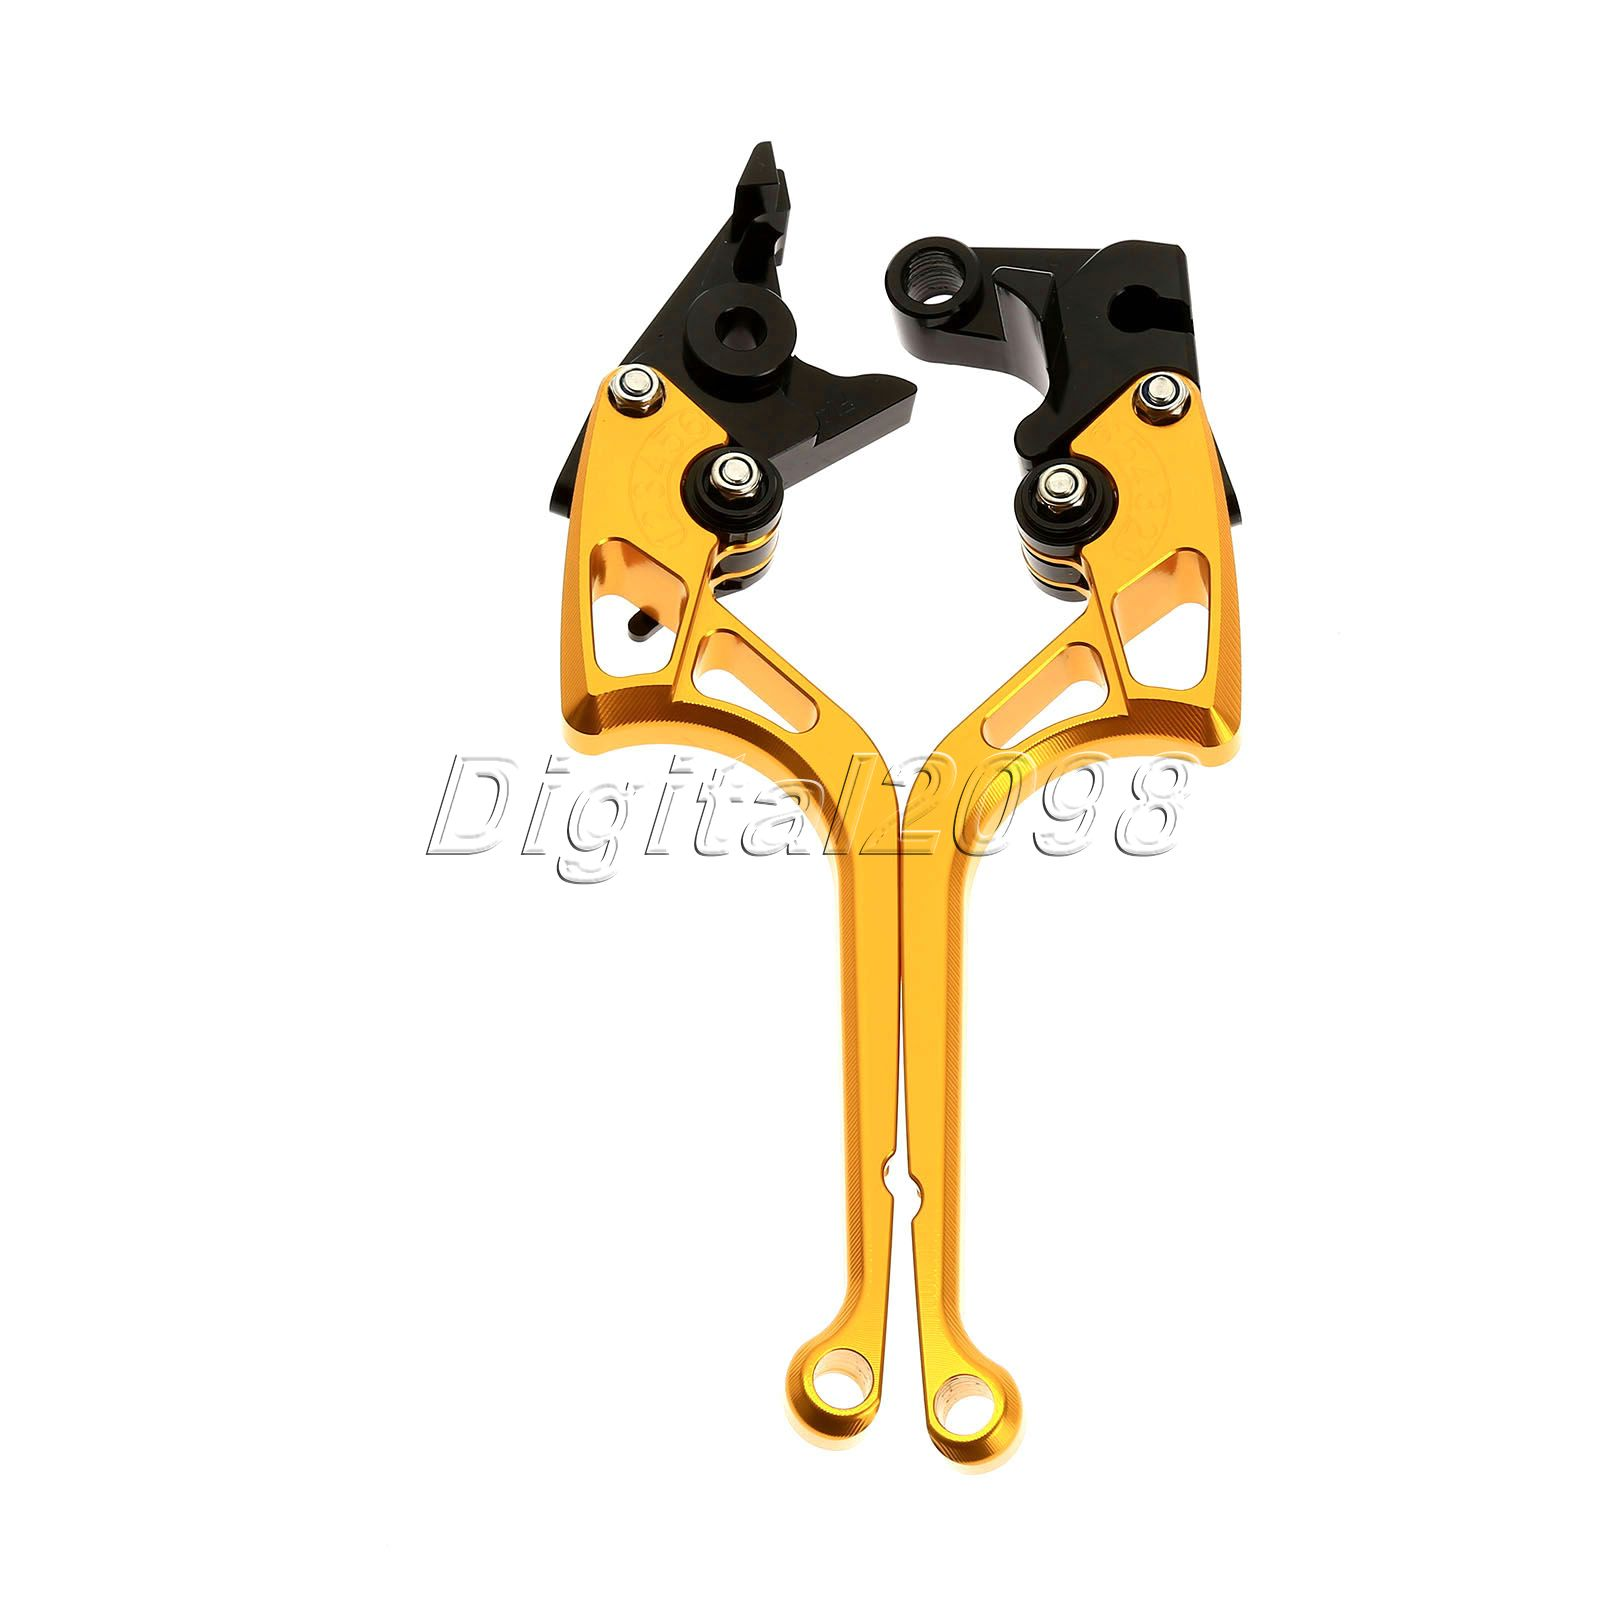 Brake Clutch Levers CNC Adjustable Levers for Honda VF750S SABRE,VFR750,VFR800/F,VTR1000F,CBF1000,VRF 1992 New Motorbike Brake 5 color for vfr 750 800 vtr1000f cbf1000 vfr750 vfr800 folding extendable brake clutch levers gold motorcycle